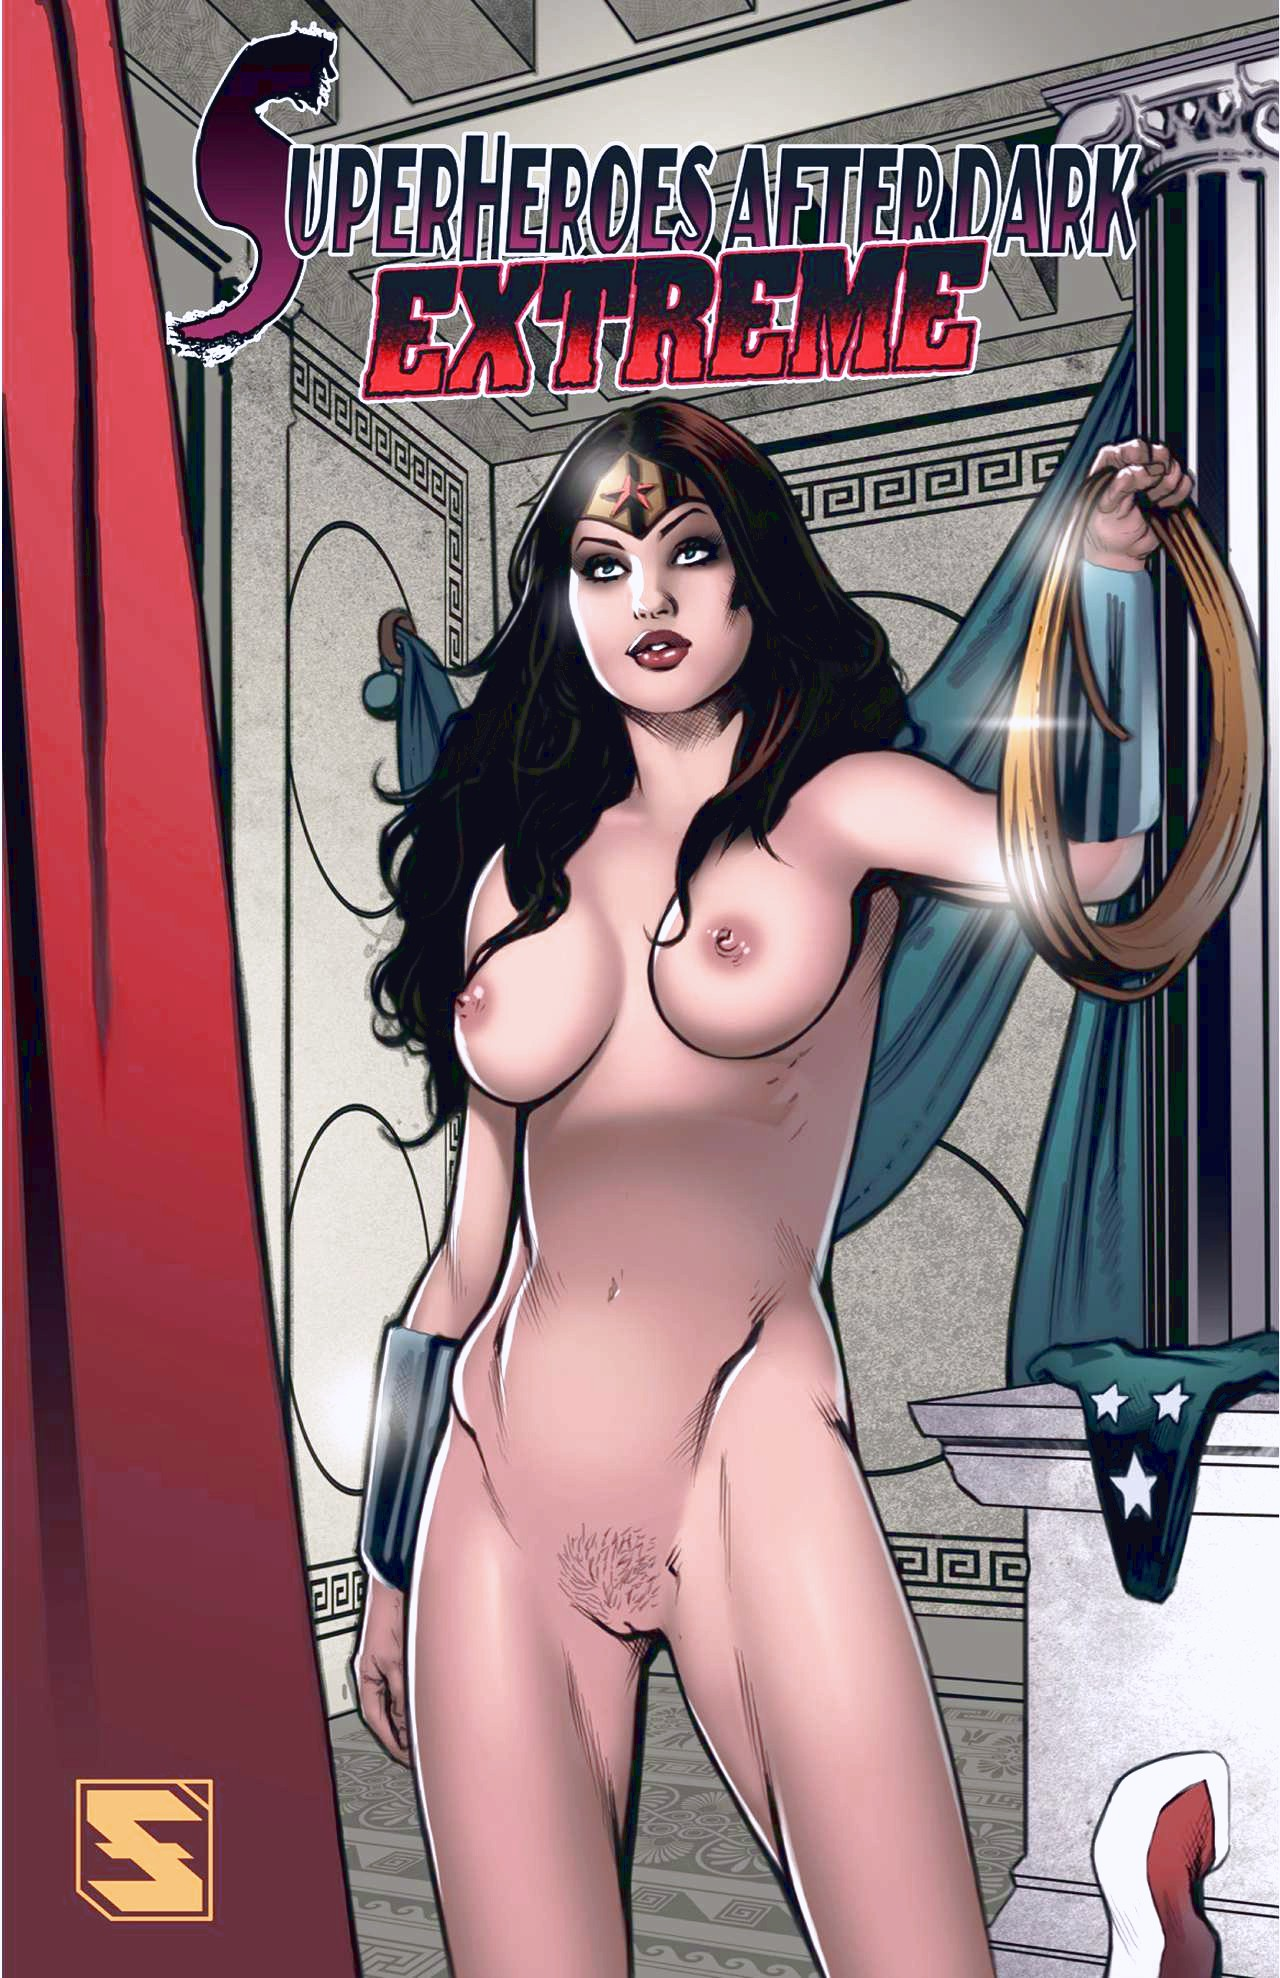 Superheroes After Dark Extreme porn comic page 01